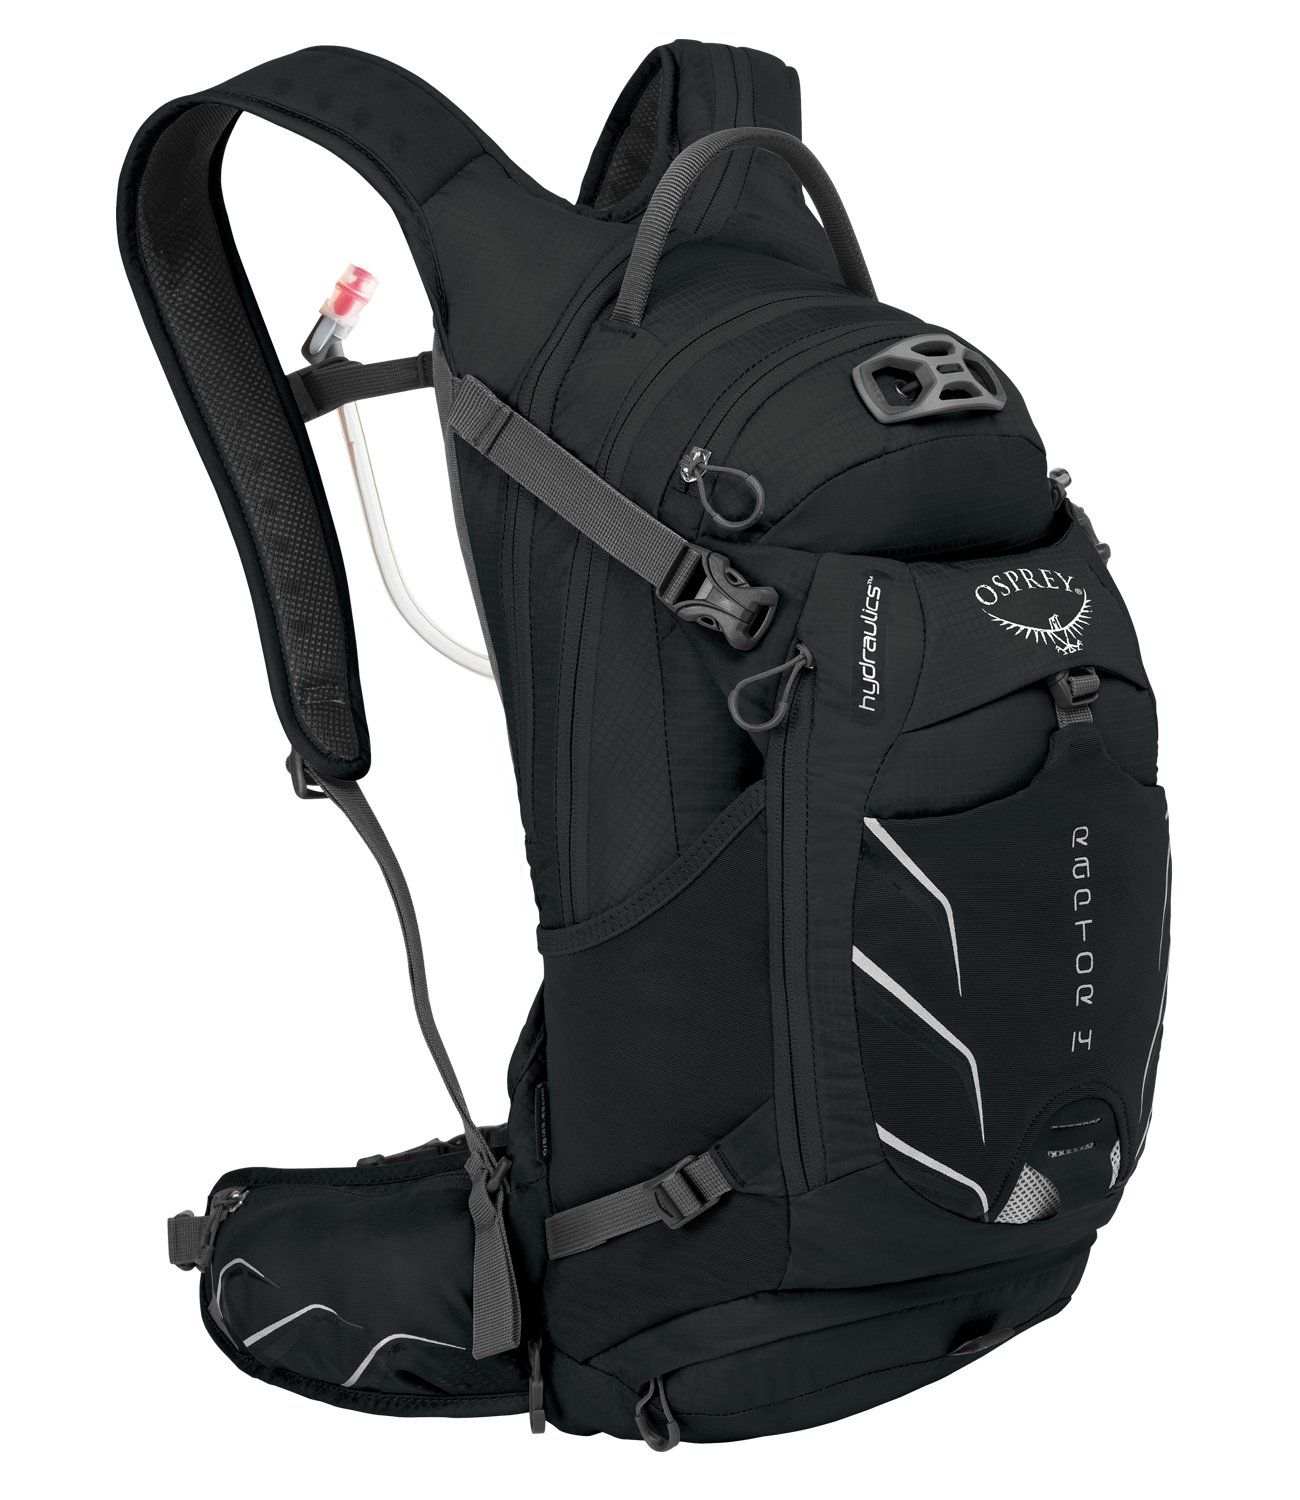 Osprey Packs Raptor 14 Hydration Pack Black Osprey Backpacks Osprey Packs Hydration Pack